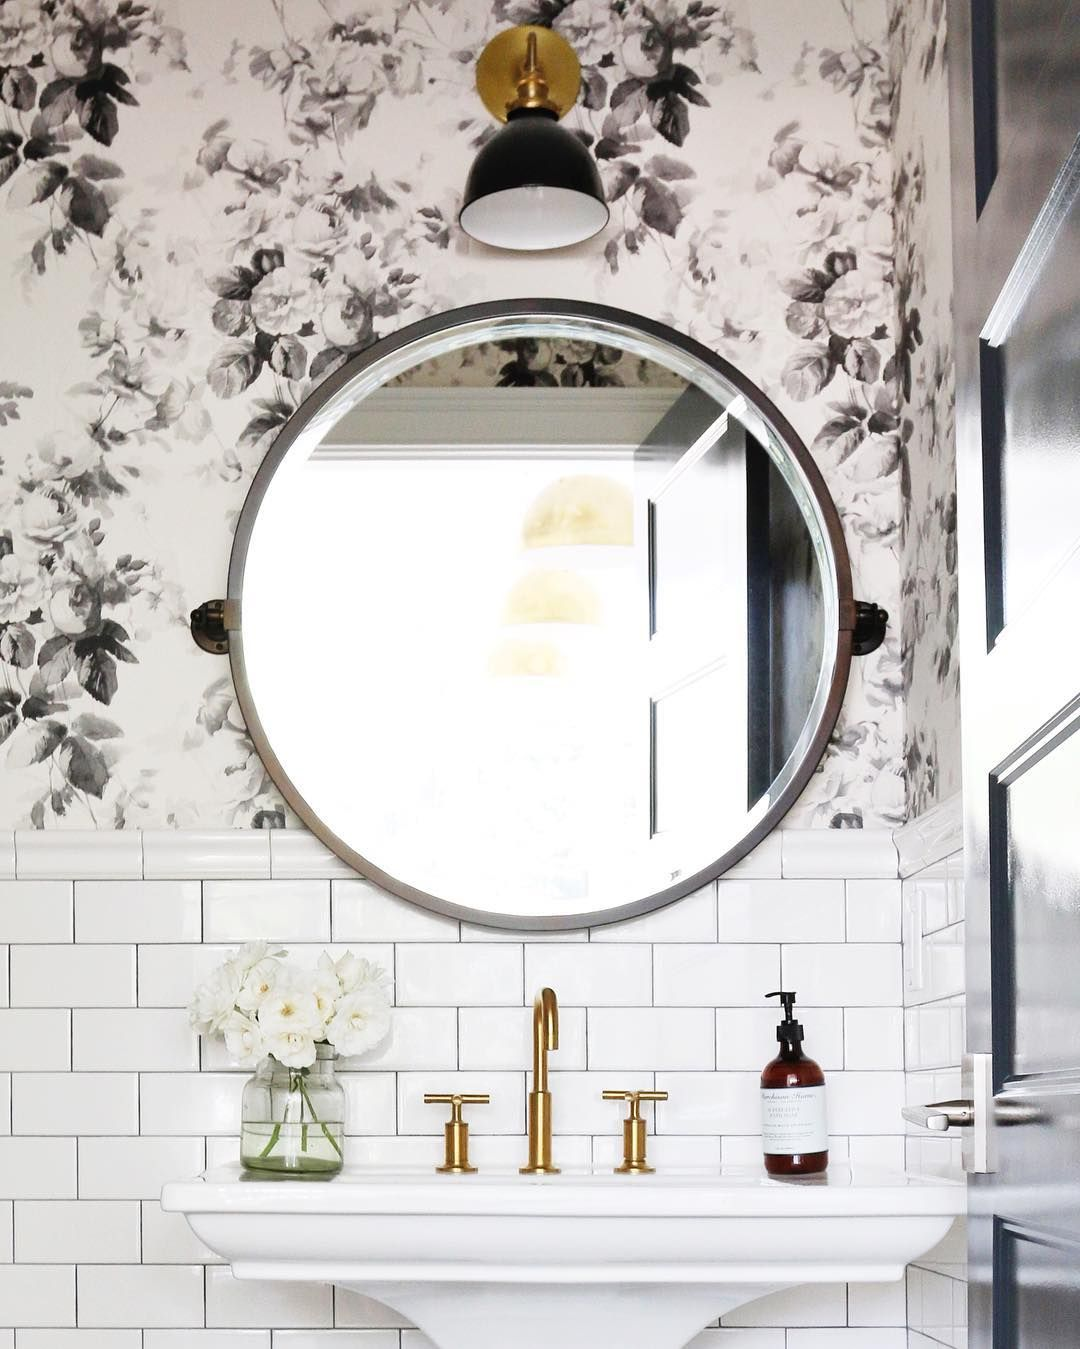 Floral Wallpaper and subway tile | Powder room small ... on Floral Tile Bathroom Ideas  id=80256